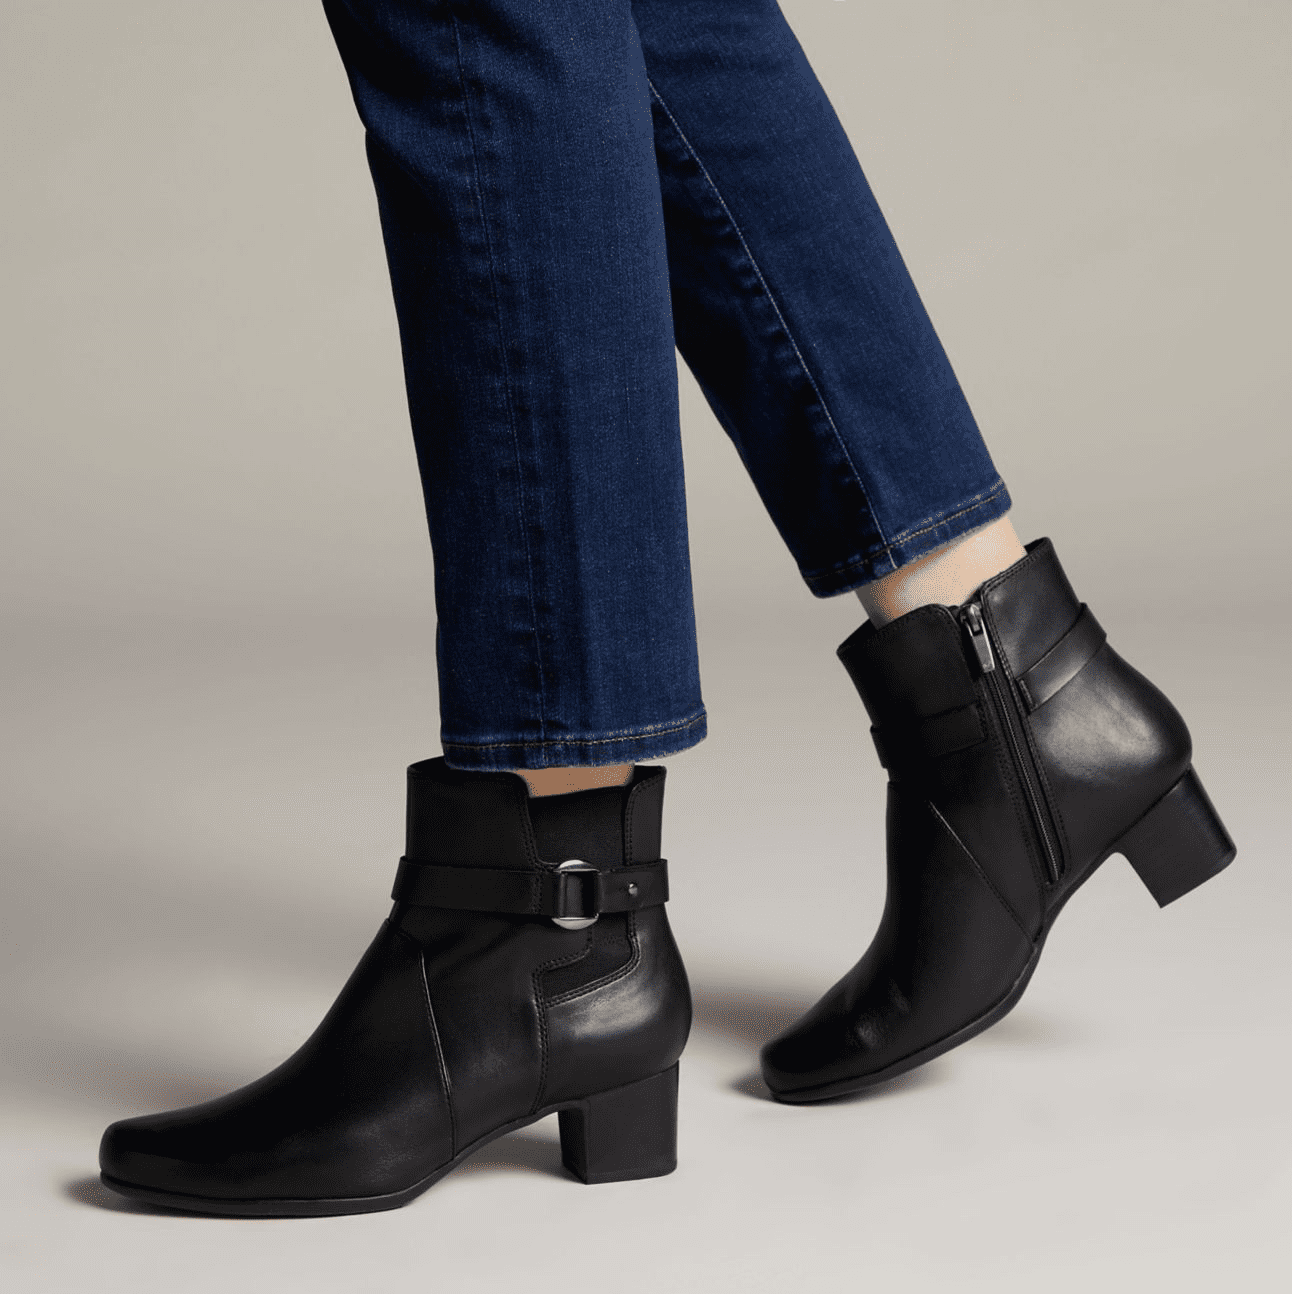 Clarks: Up o 50% off sale styles + extra 40% off!